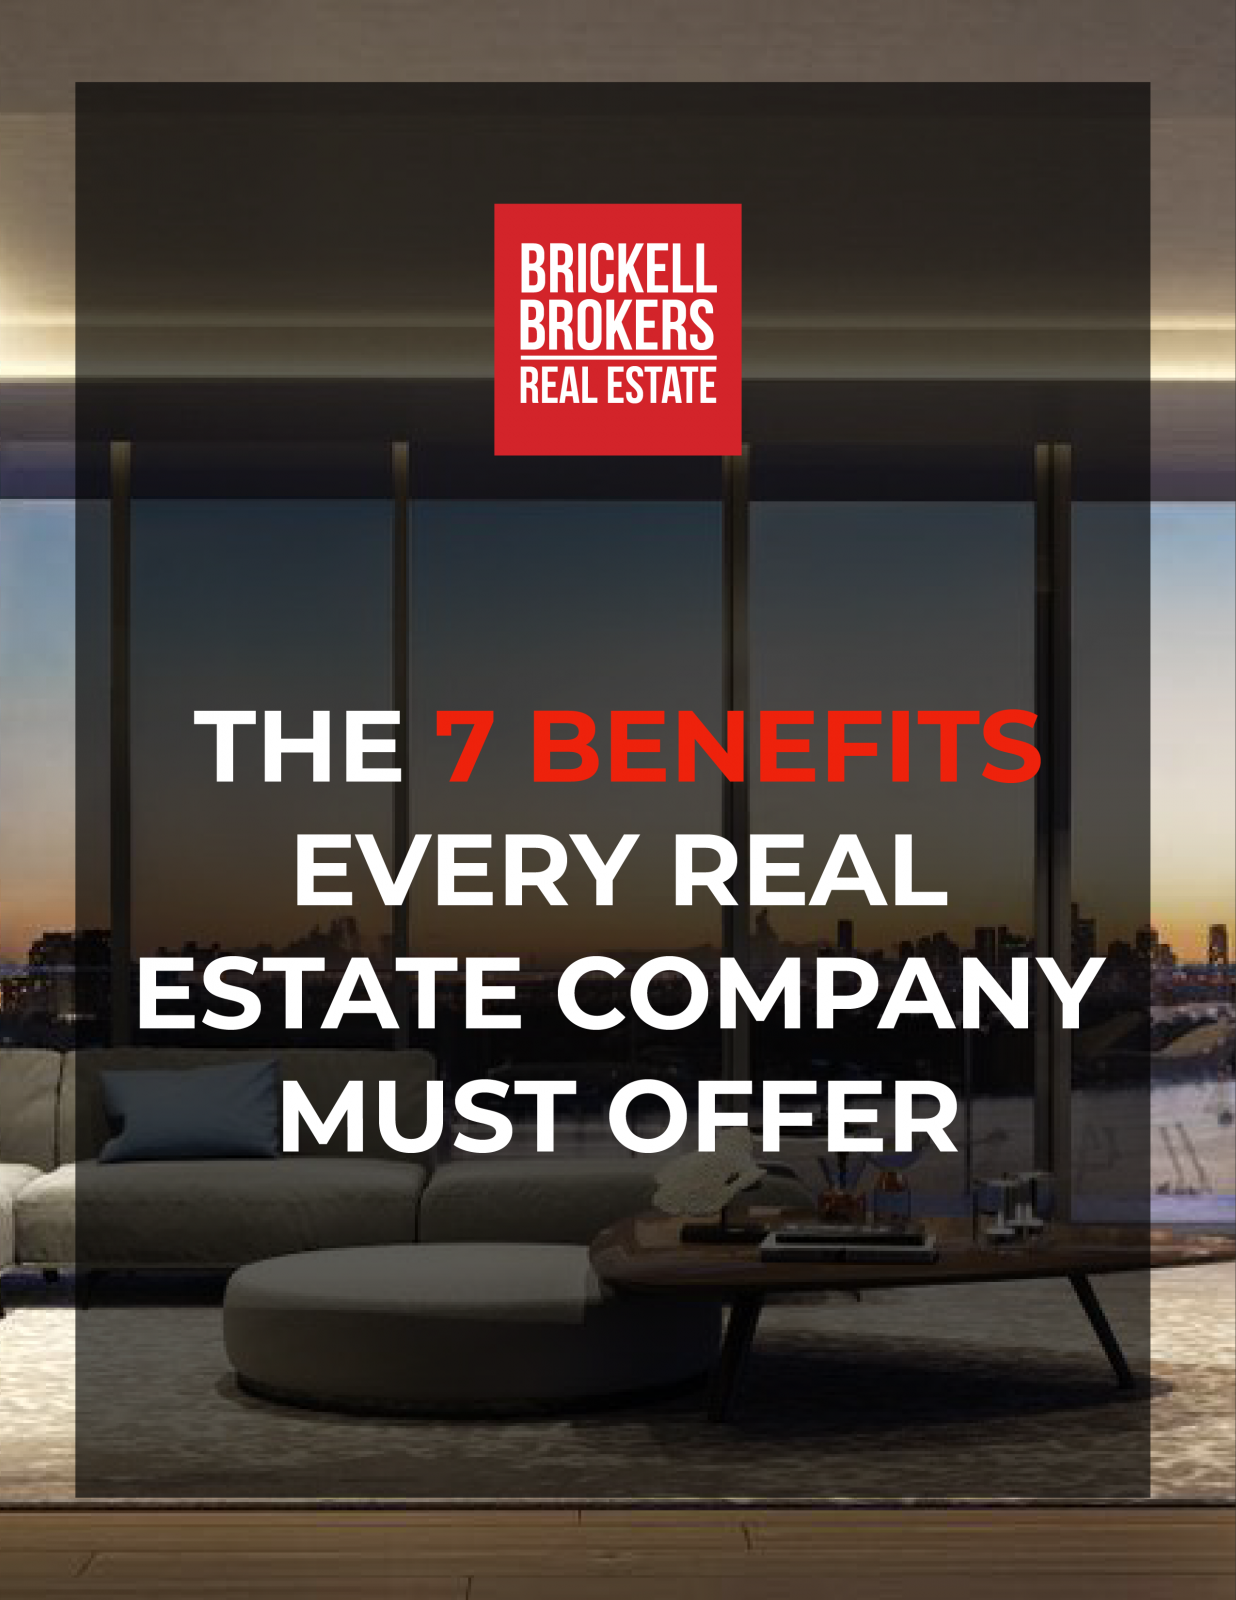 THE 7 BENEFITS EVERY REAL ESTATE COMPANY MUST OFFER